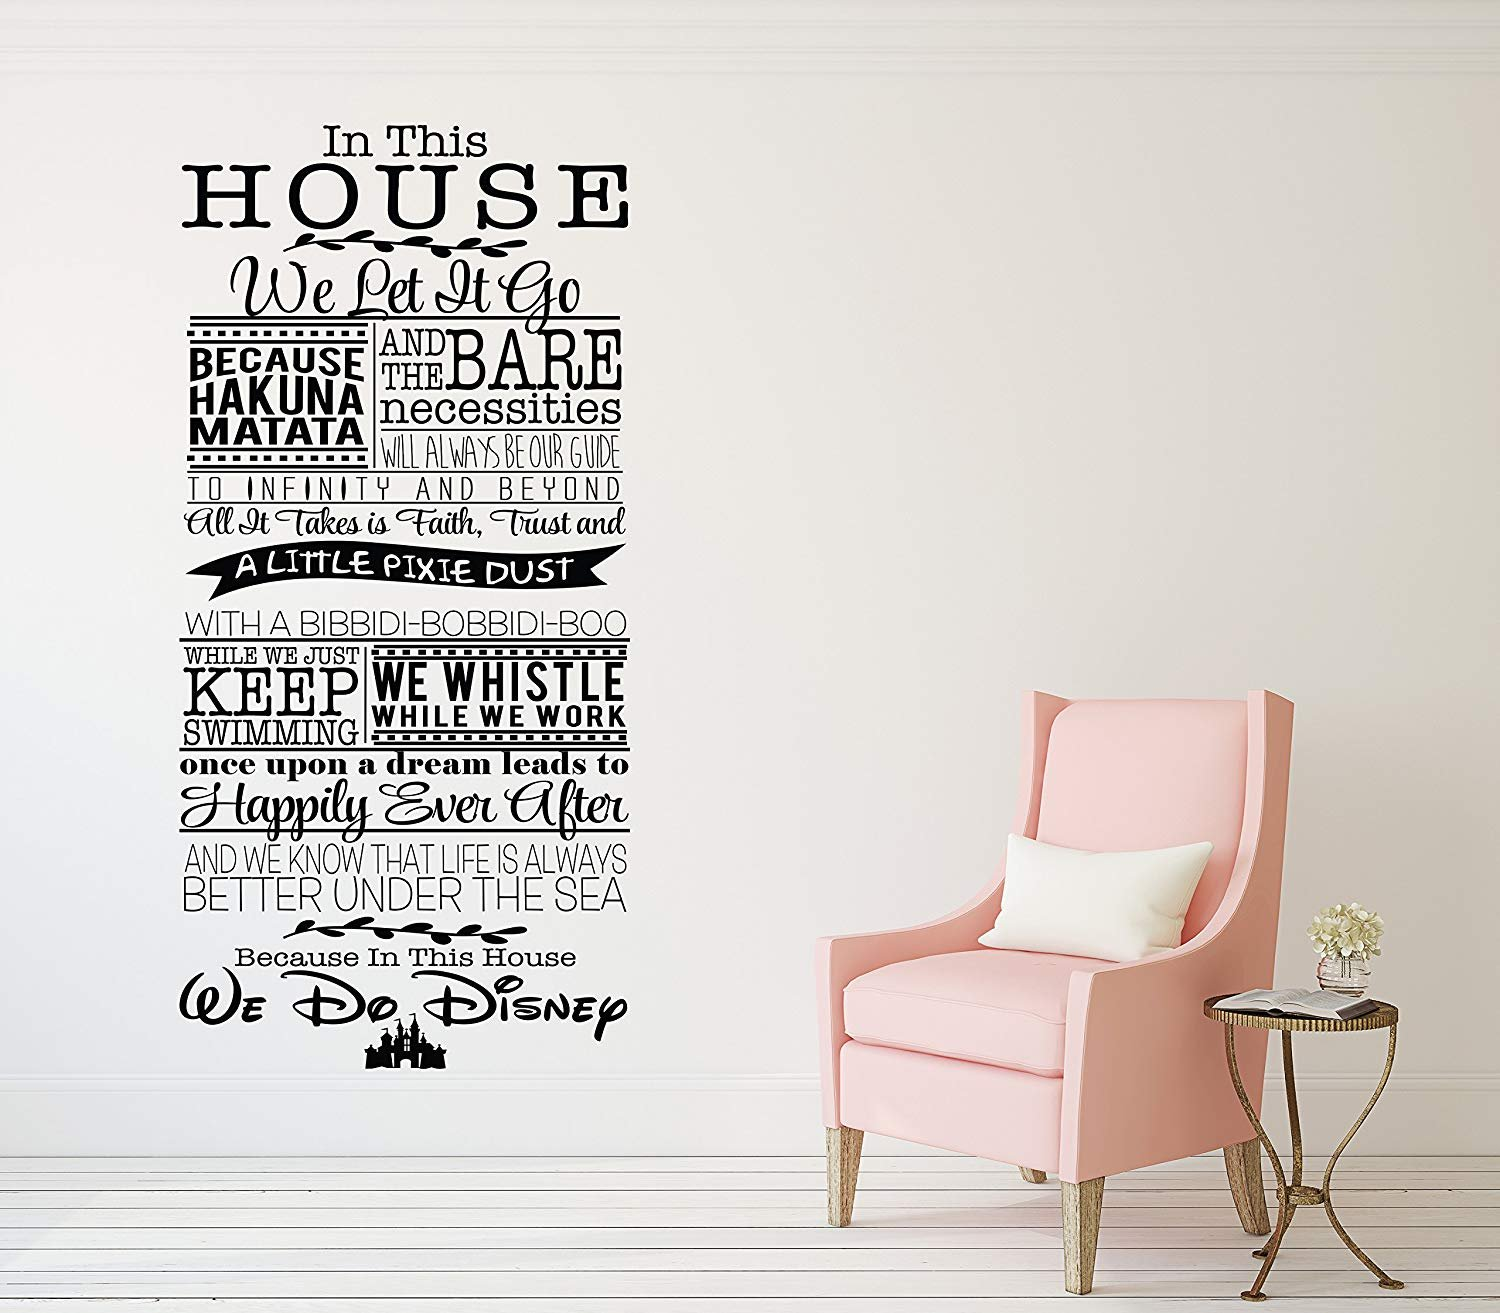 in This House We Do Disney Wall Decal Vinyl Wall Lettering Decal Walt Disney Movie Quotes Home Decor Sticker (30